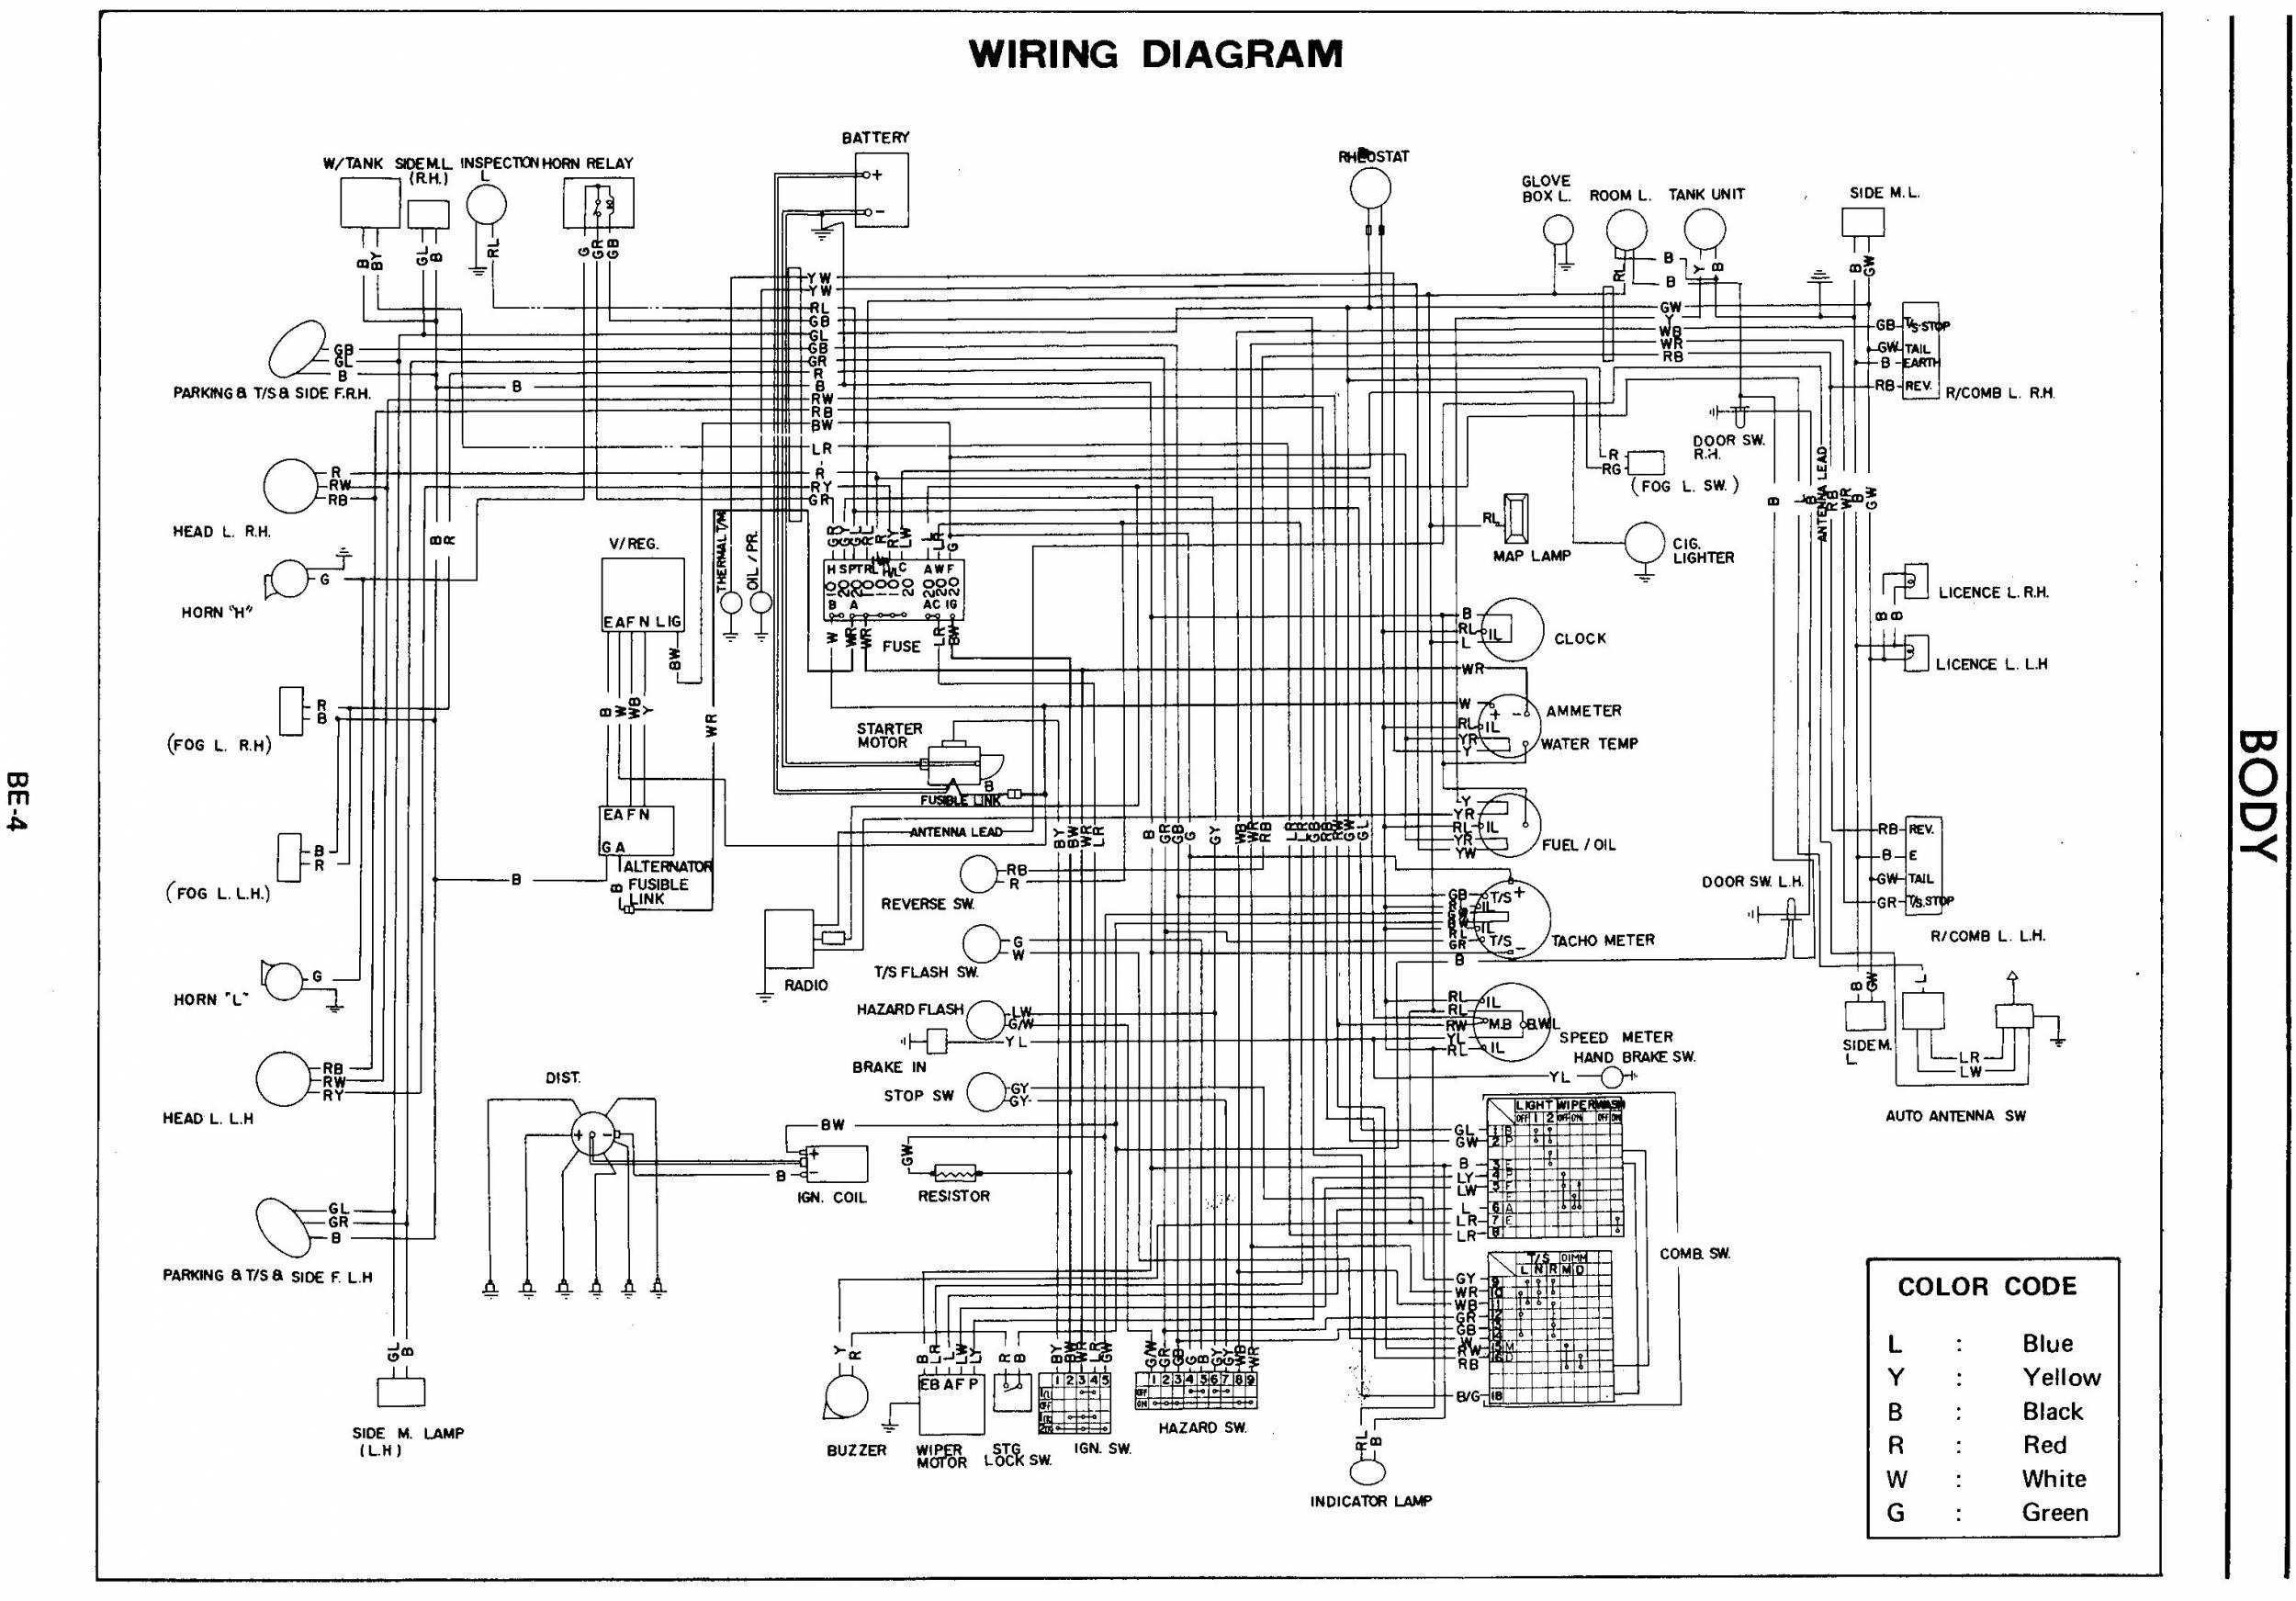 W124 Wiring Diagram Besides 2001 Gmc Sierra Radio 2006 Bose Stereo Diy Enthusiasts Diagrams Rh Skincareuse Pw